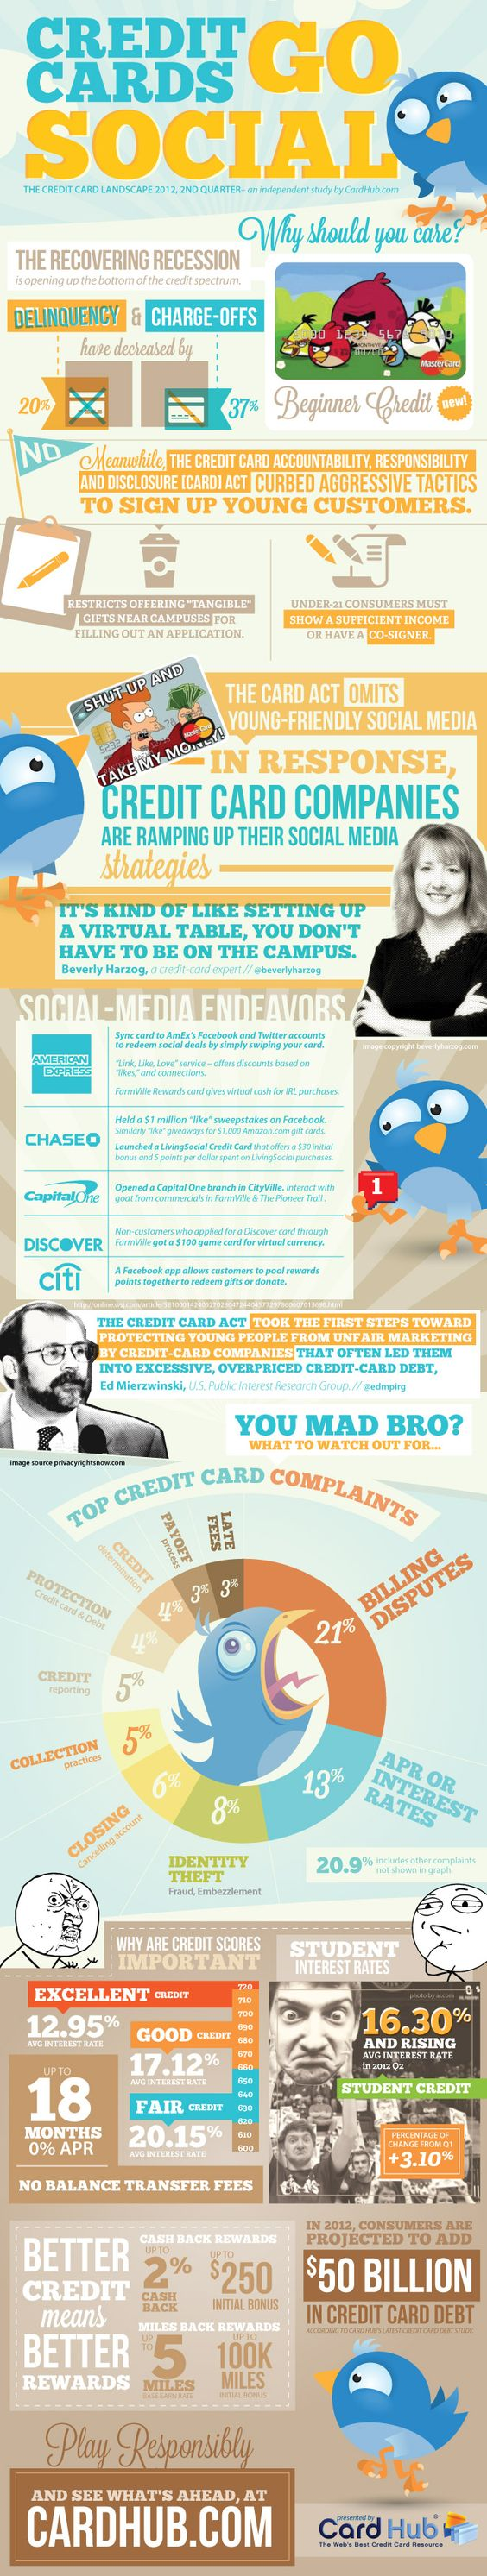 How Credit Card Companies Lure Customers on #SocialMedia [#INFOGRAPHIC]